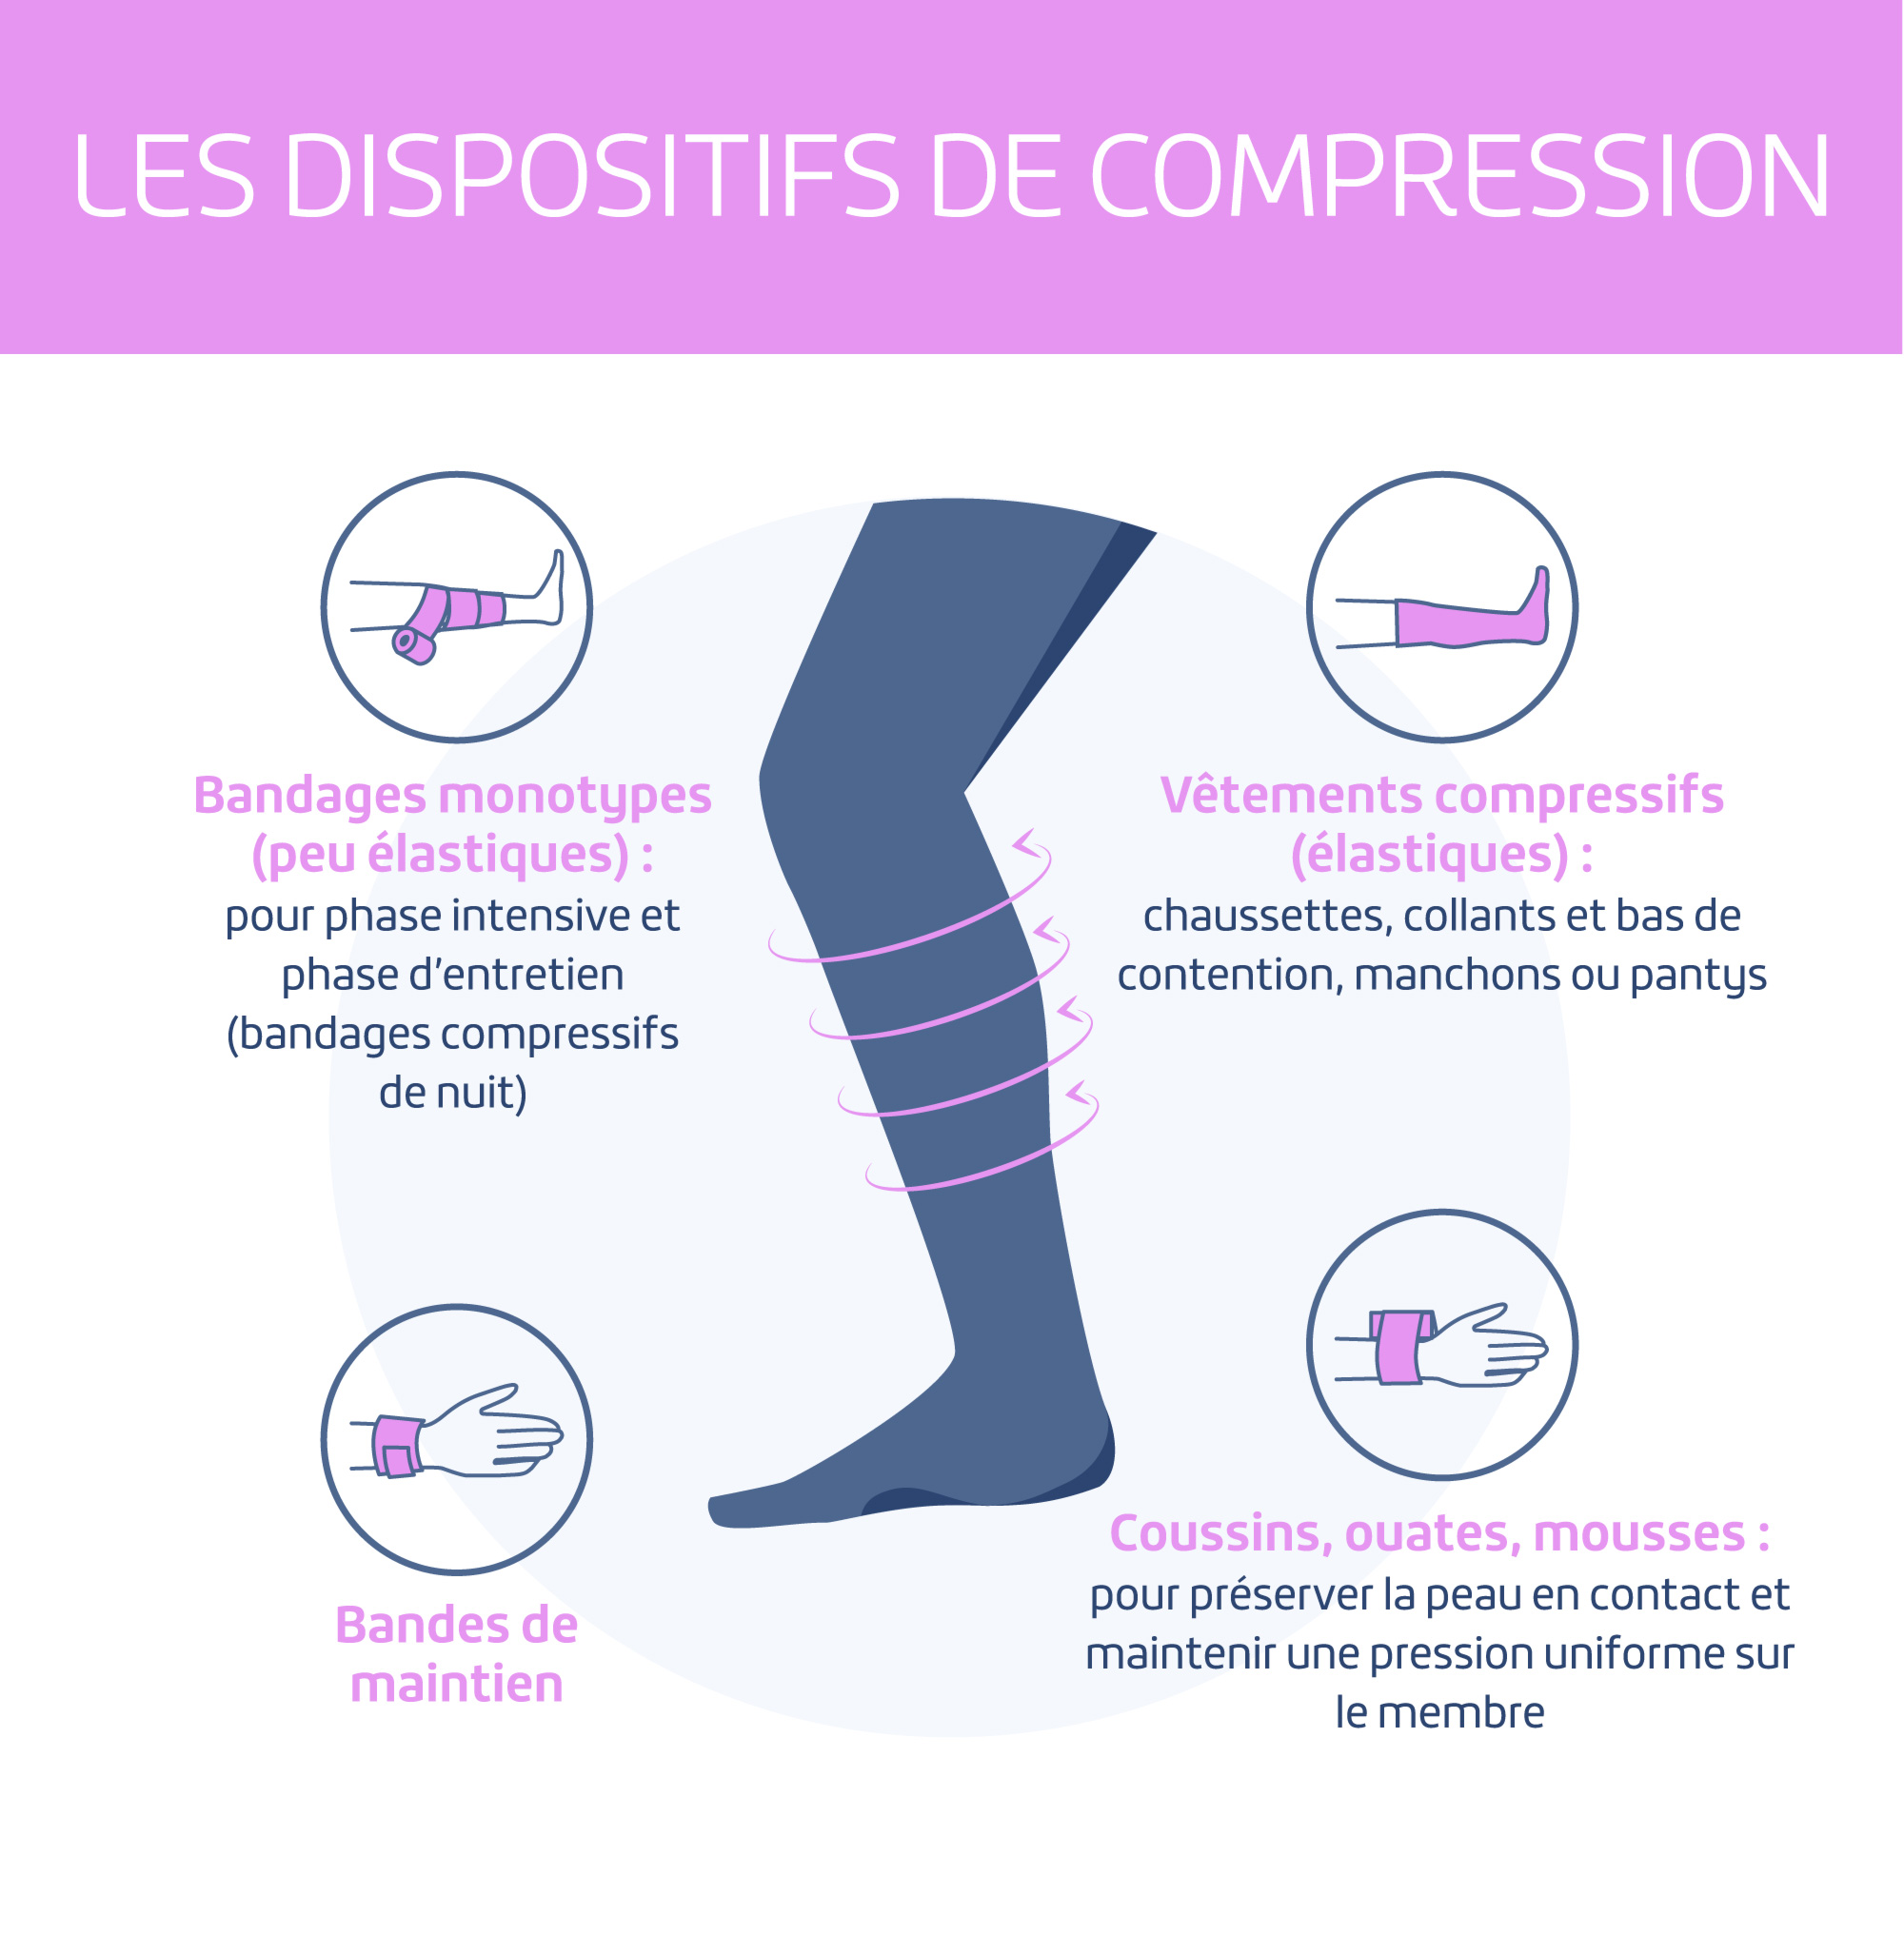 Lymphœdème : les dispositifs de compression